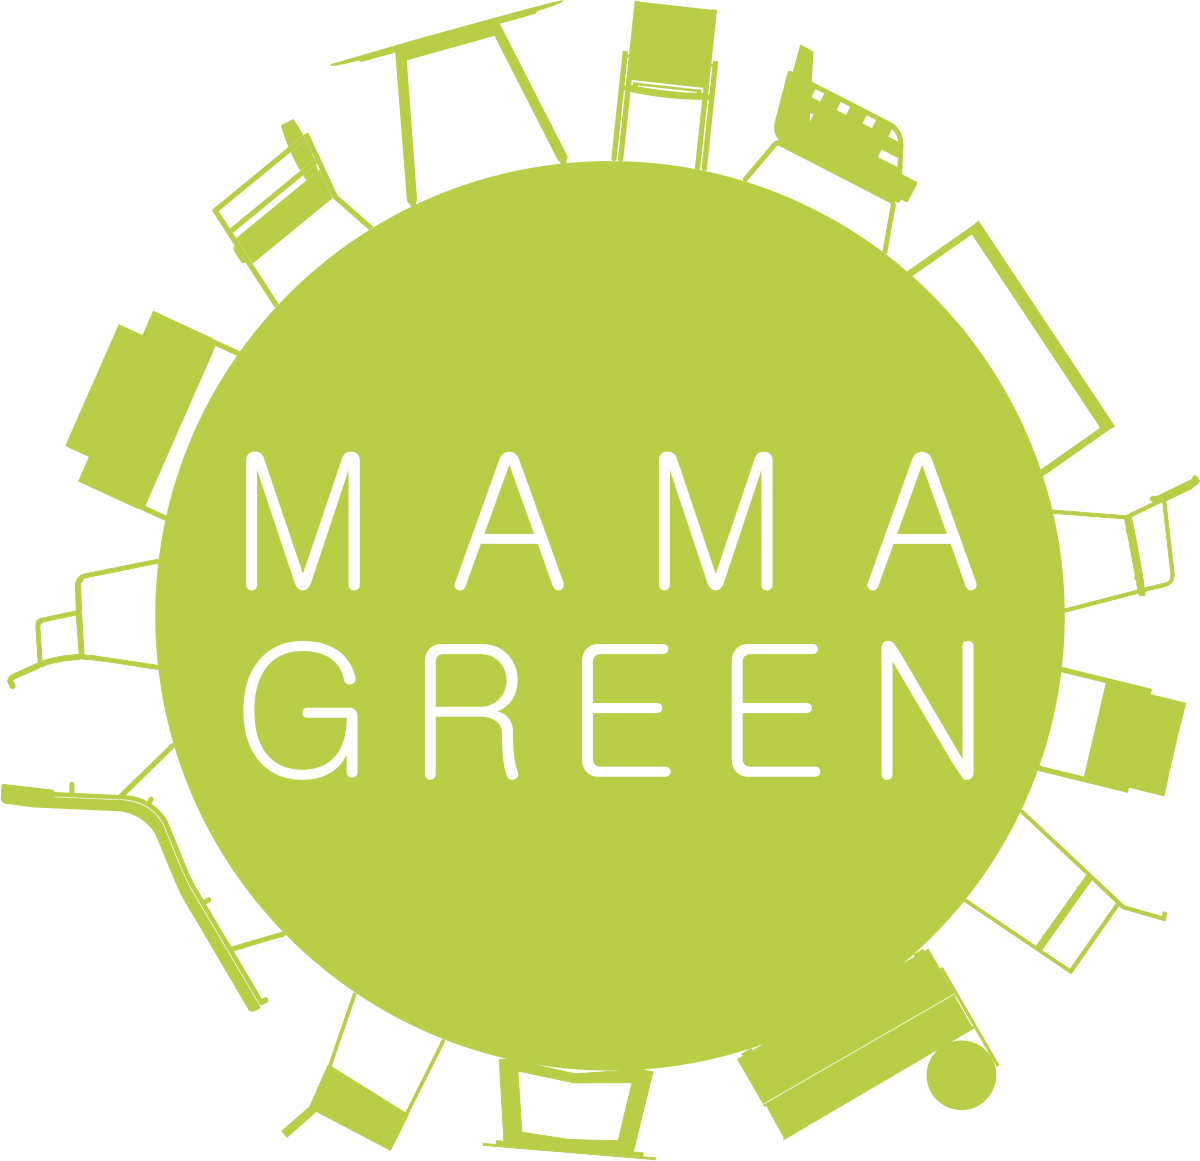 MAMAGREEN_logo_round_green.png